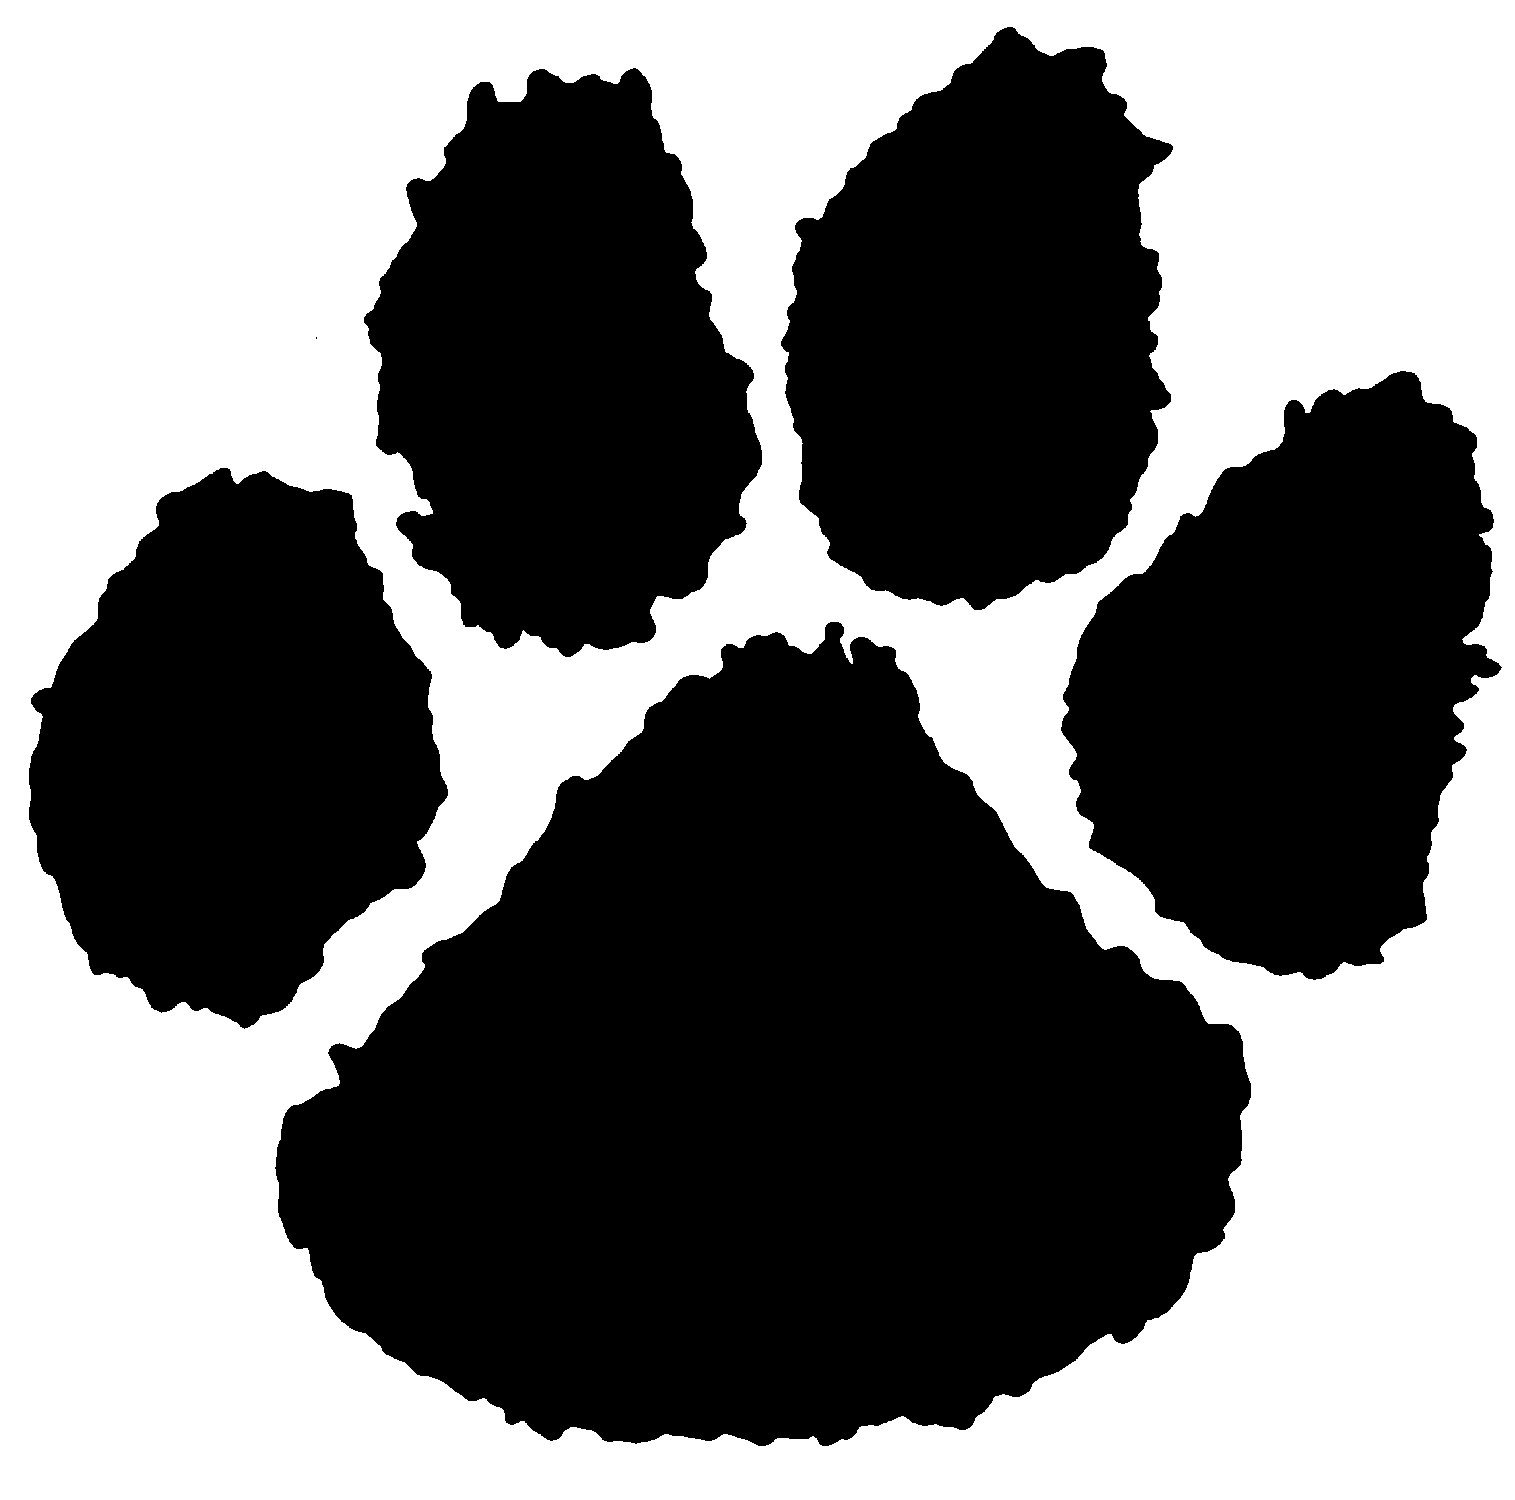 Tiger paw clipart in white clip royalty free download Free Tiger Paw Print, Download Free Clip Art, Free Clip Art ... clip royalty free download